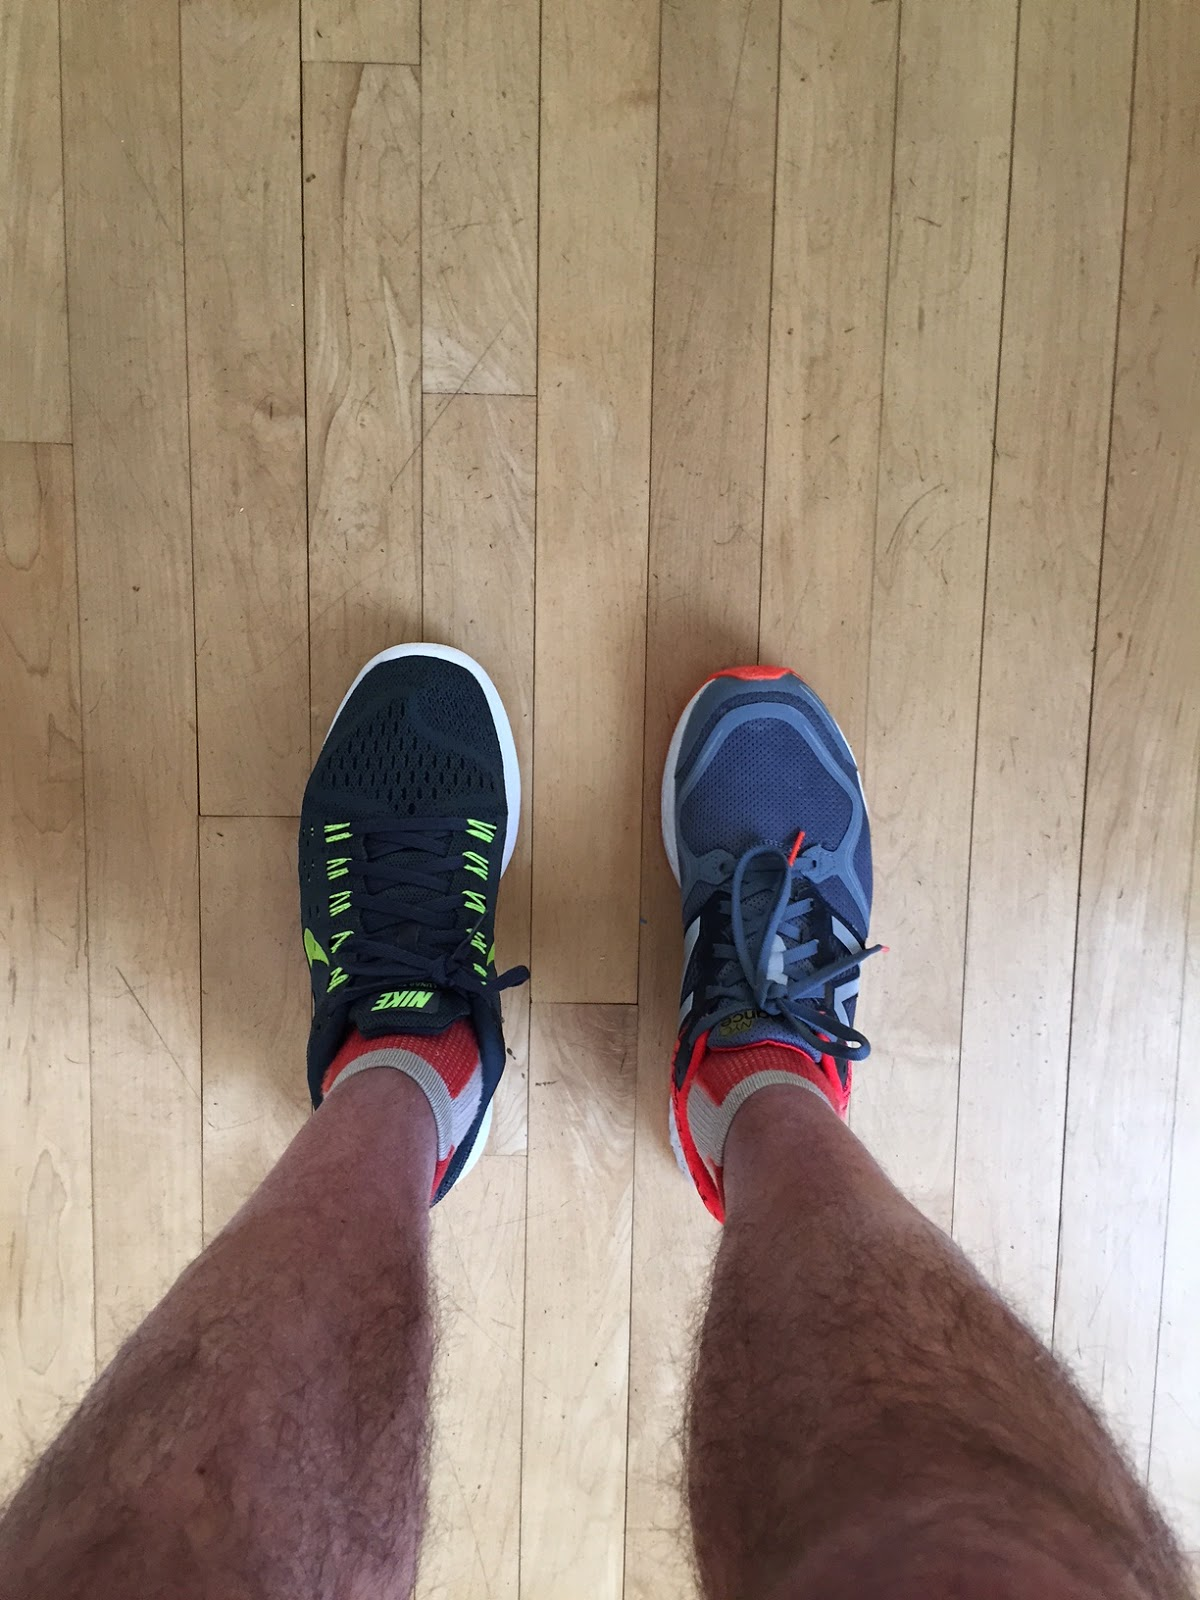 c9fd28f107fac Nike Lunar Tempo (left) New Balance Zante (right) Note wider mid foot arch  area upper of Tempo